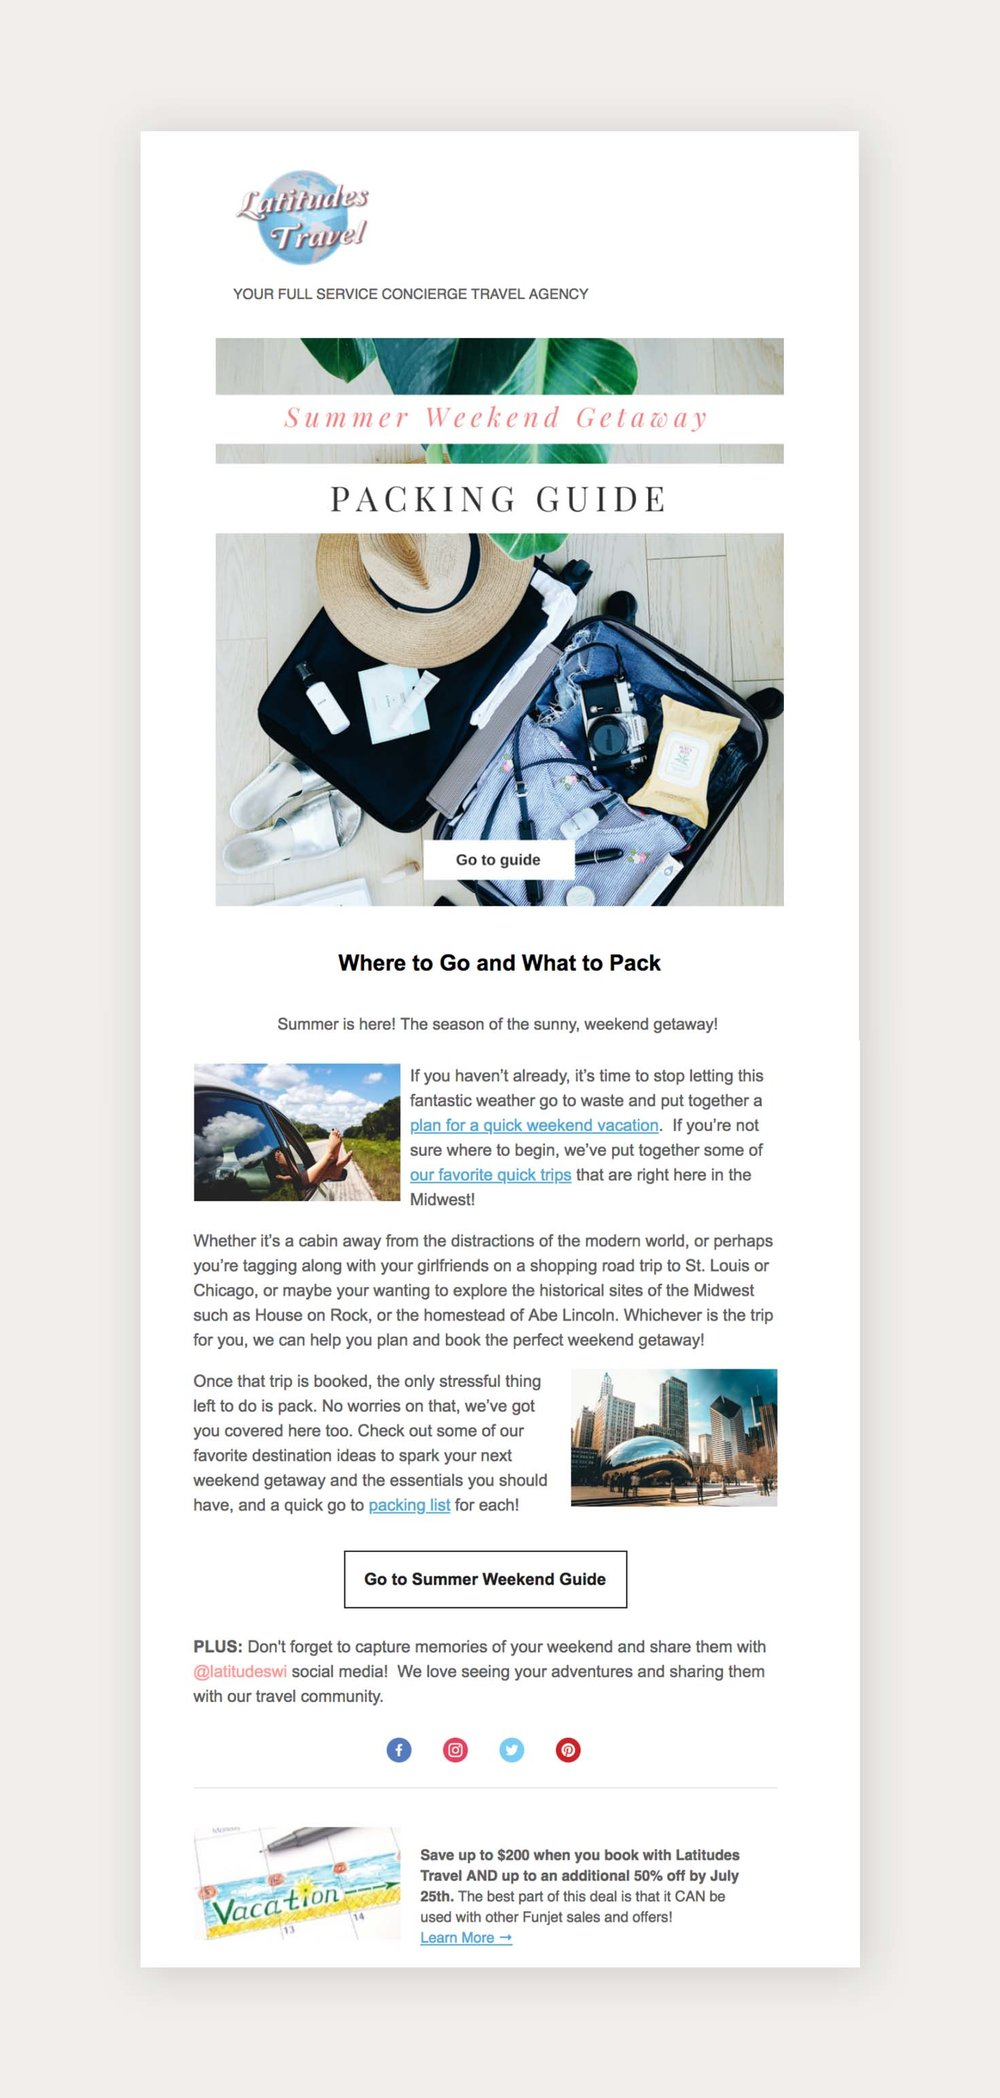 Latitude's Travel  Email Campaign Design